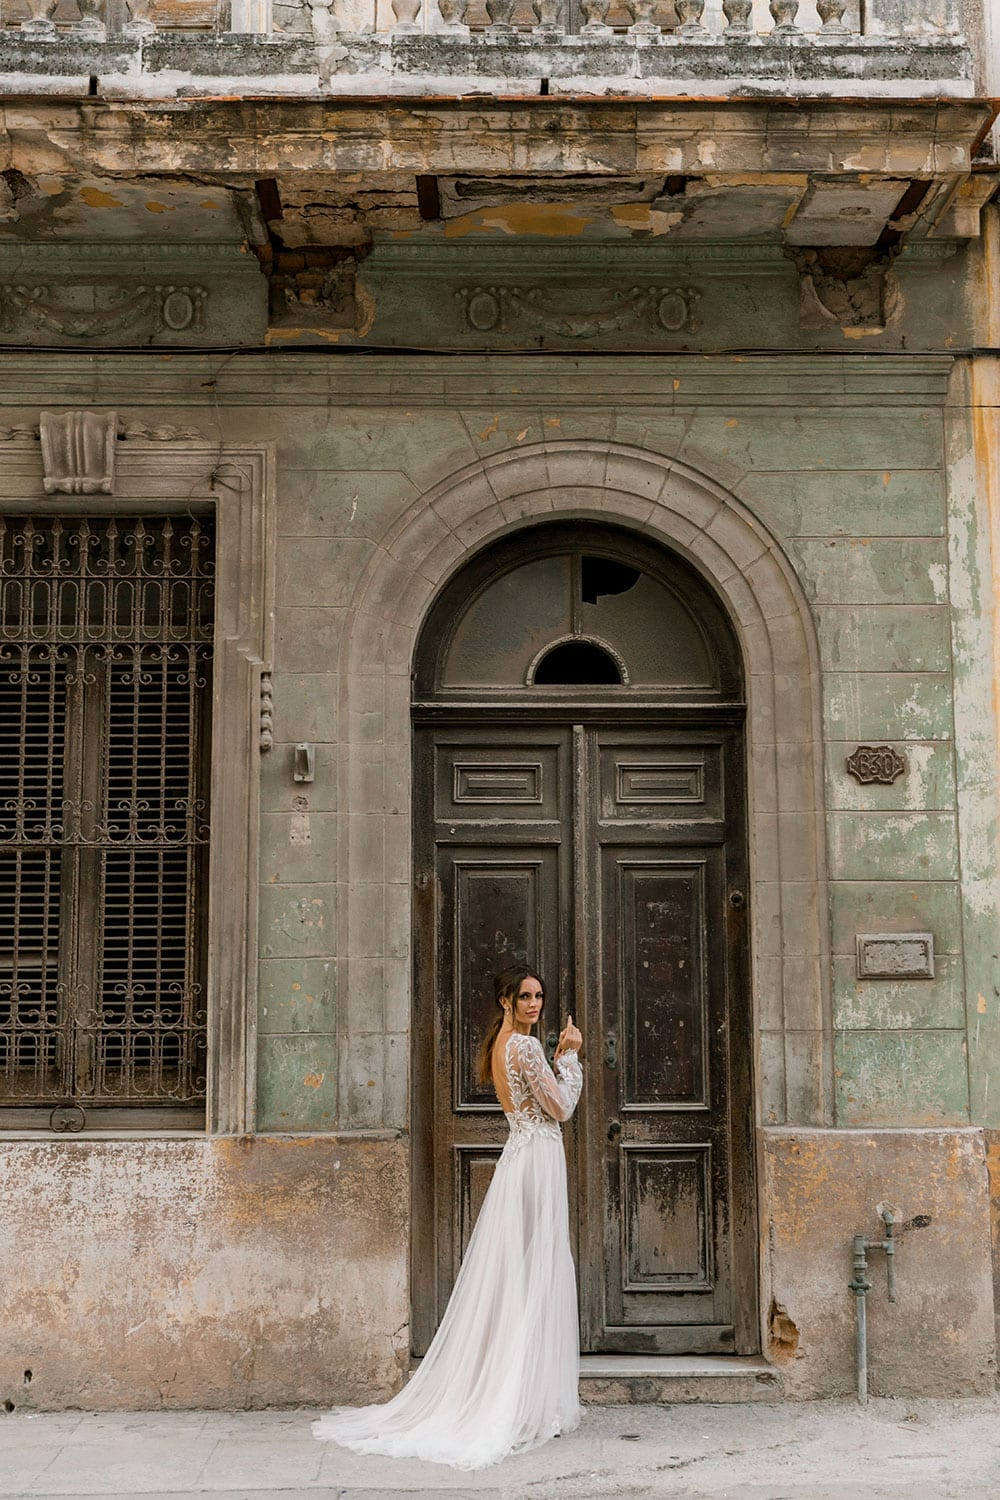 Model wearing Vinka Design Ivy Wedding Dress, a Silk and Tulle Wedding Gown with lace and Swarovski crystals in the streets of Havana with wooden arched doorway